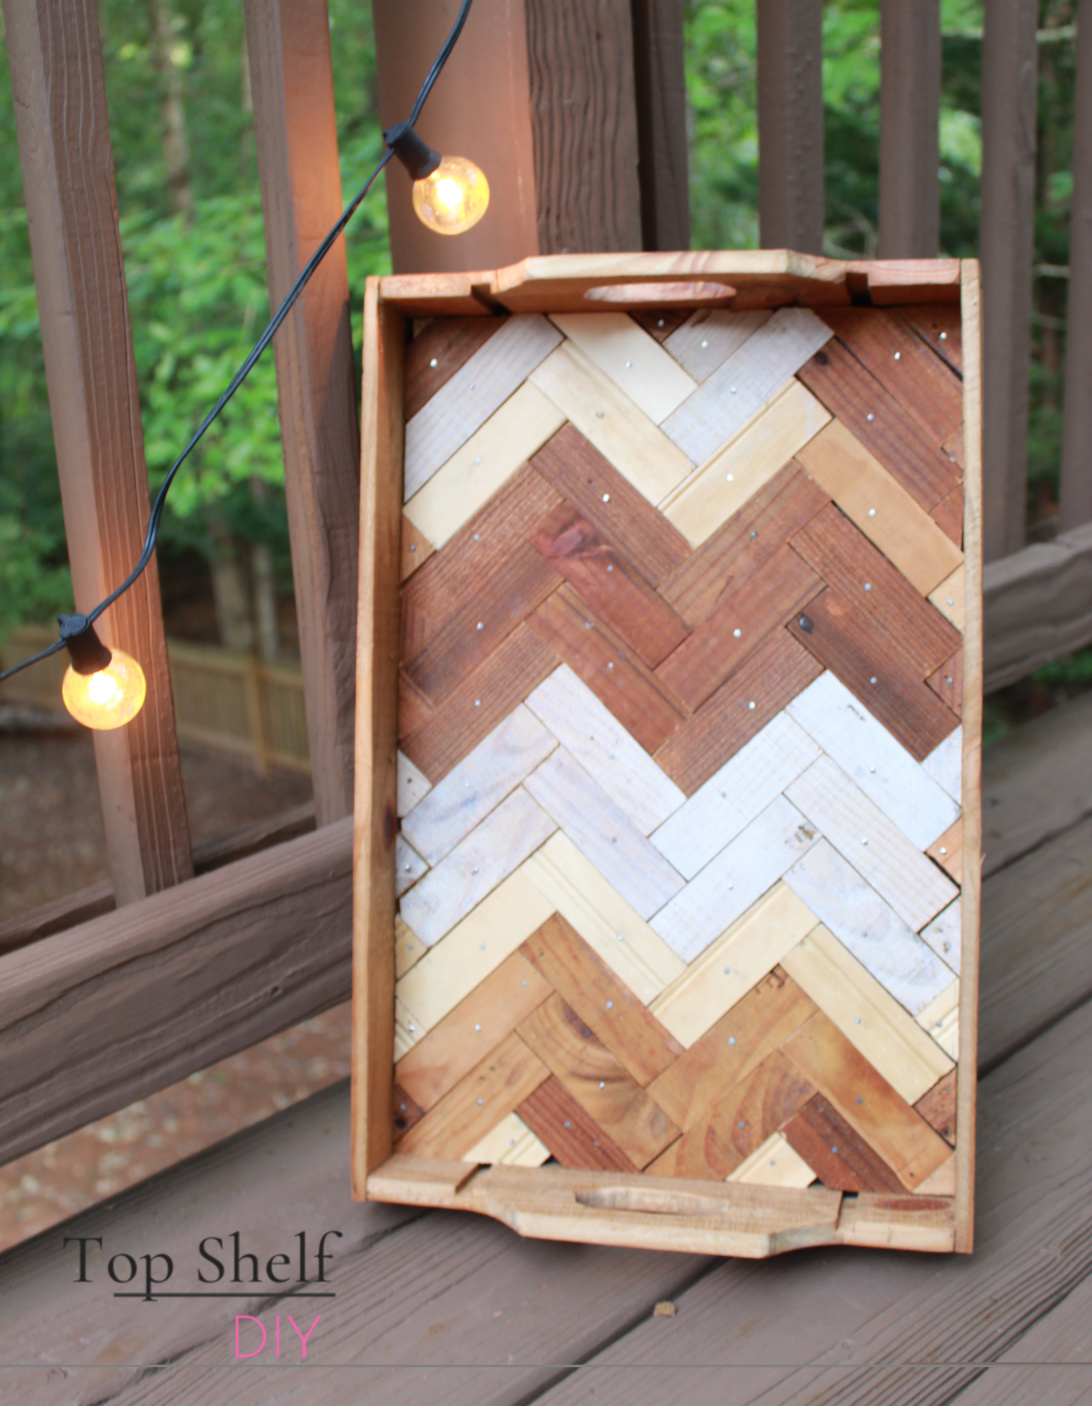 One of five DIY Christmas wood projects to make